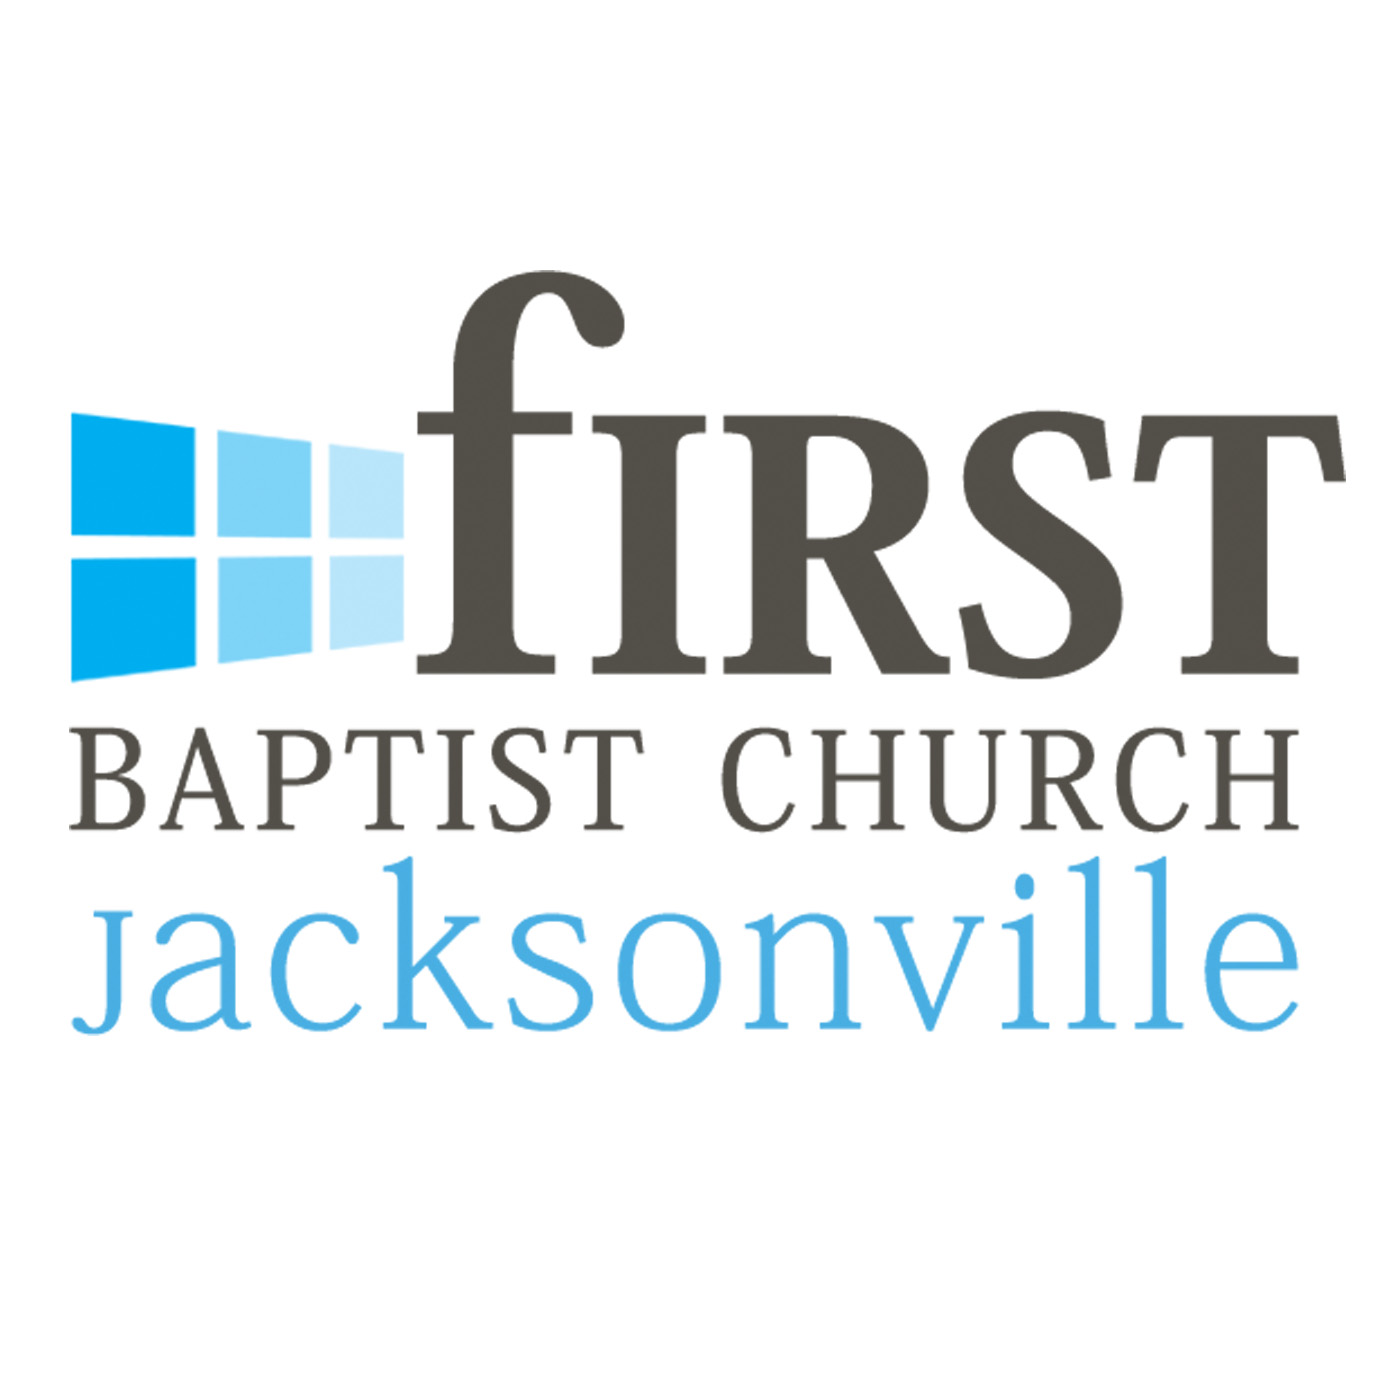 First Baptist Church of Jacksonville